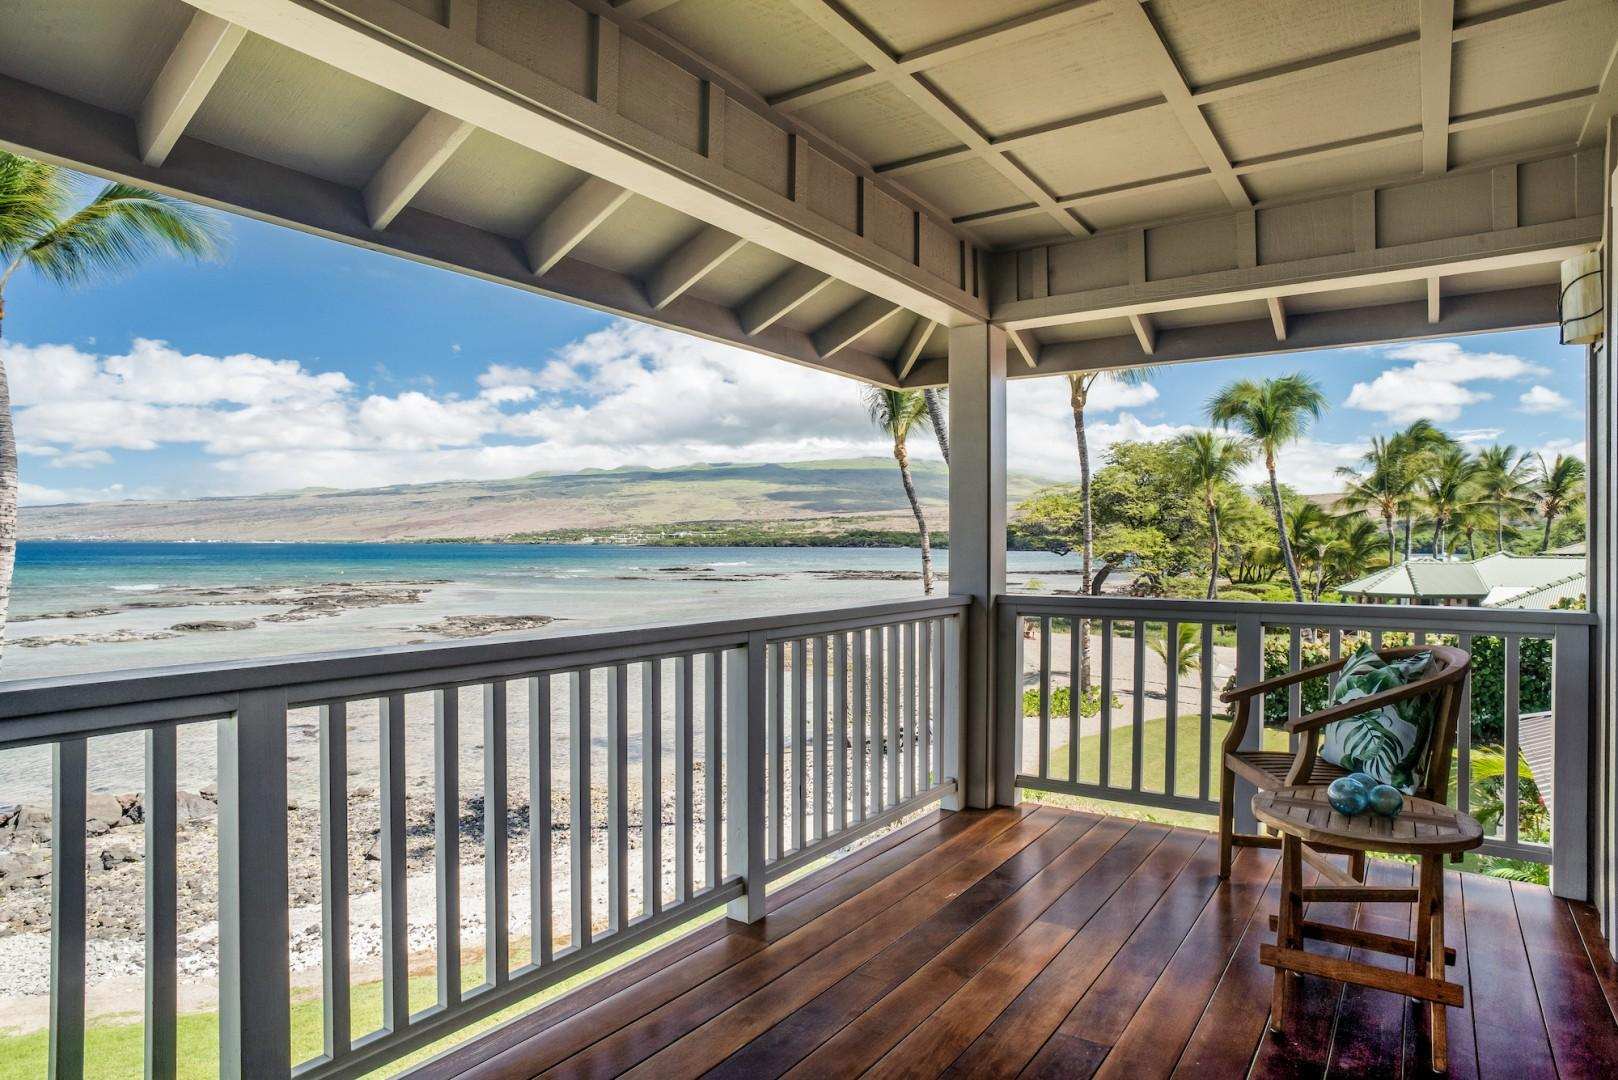 Upstairs Master Bedroom Lanai w/ Bistro Set and Comfy Love Seat to Enjoy the Magnificent Views